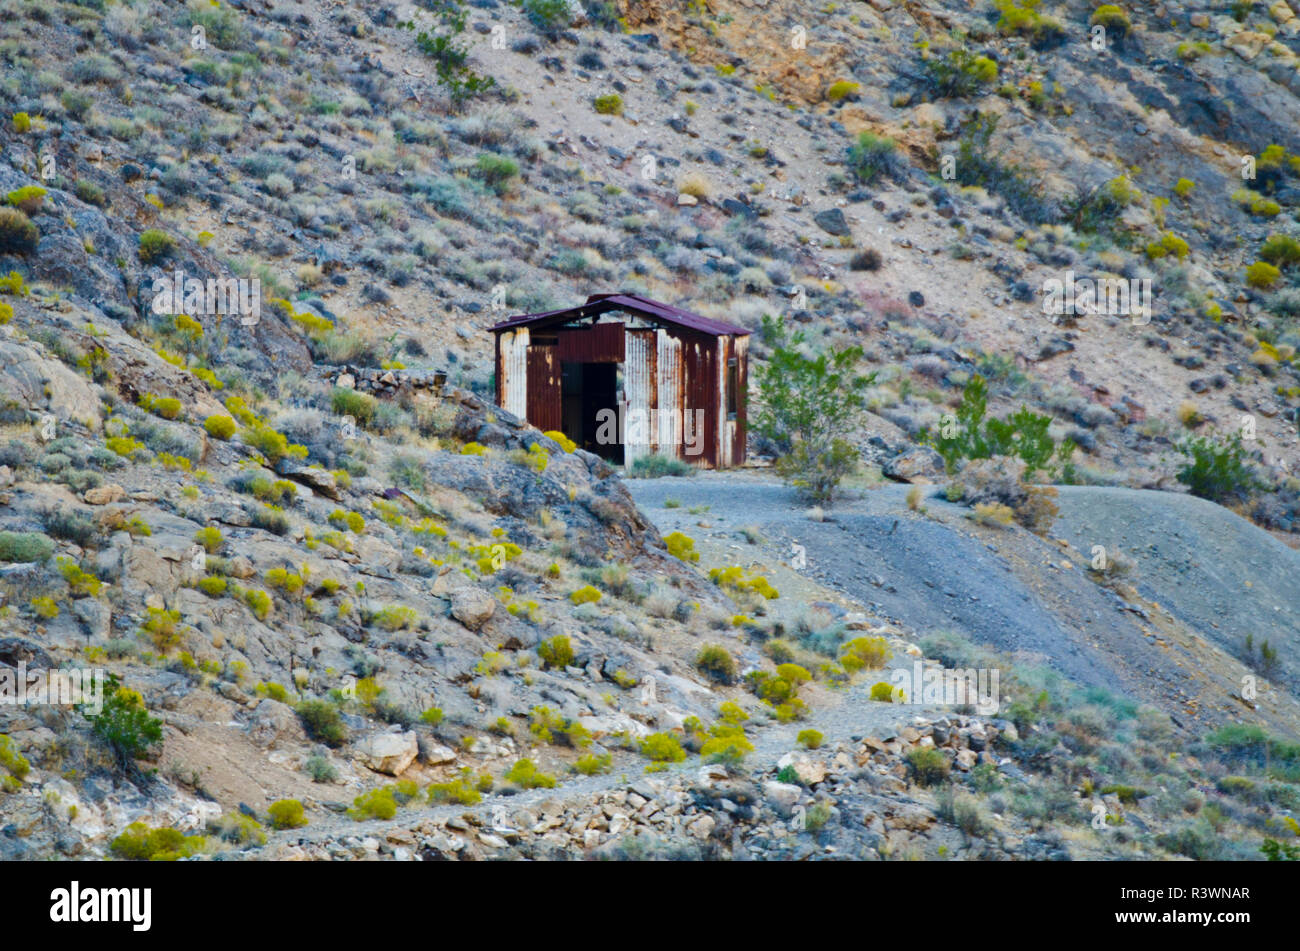 USA, California. Death Valley National Park, Titus Canyon, Leadfield Ghost Town Ruins - Stock Image